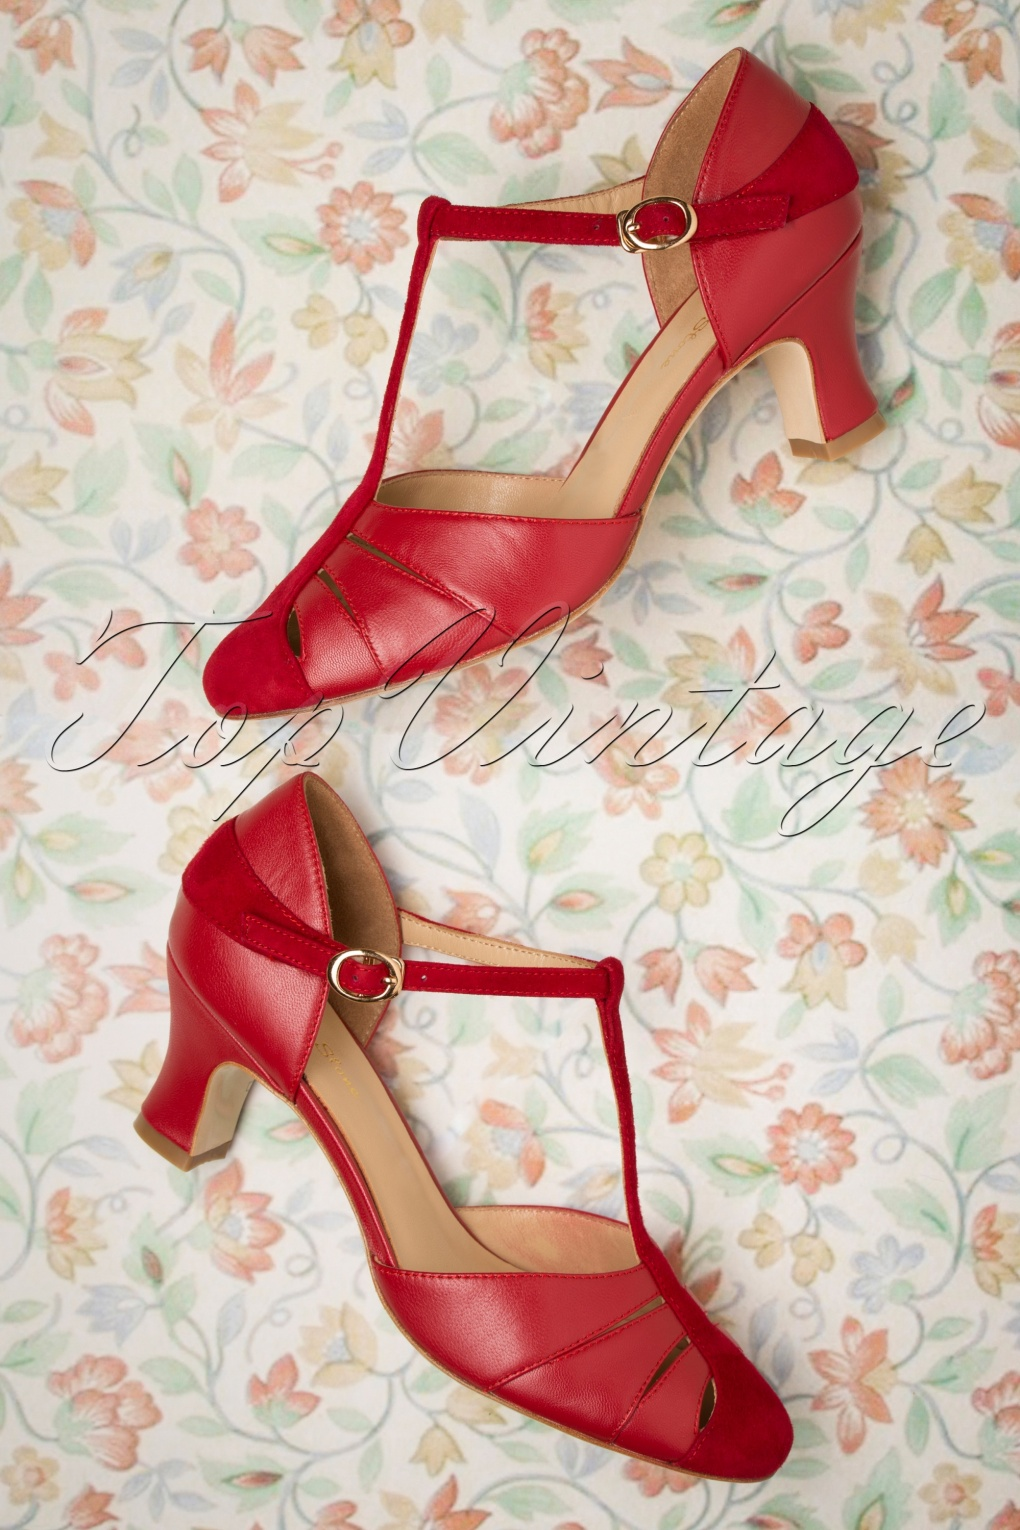 1960s Style Dresses, Clothing, Shoes UK 50s Toscana T-Strap Pumps in Red £148.12 AT vintagedancer.com